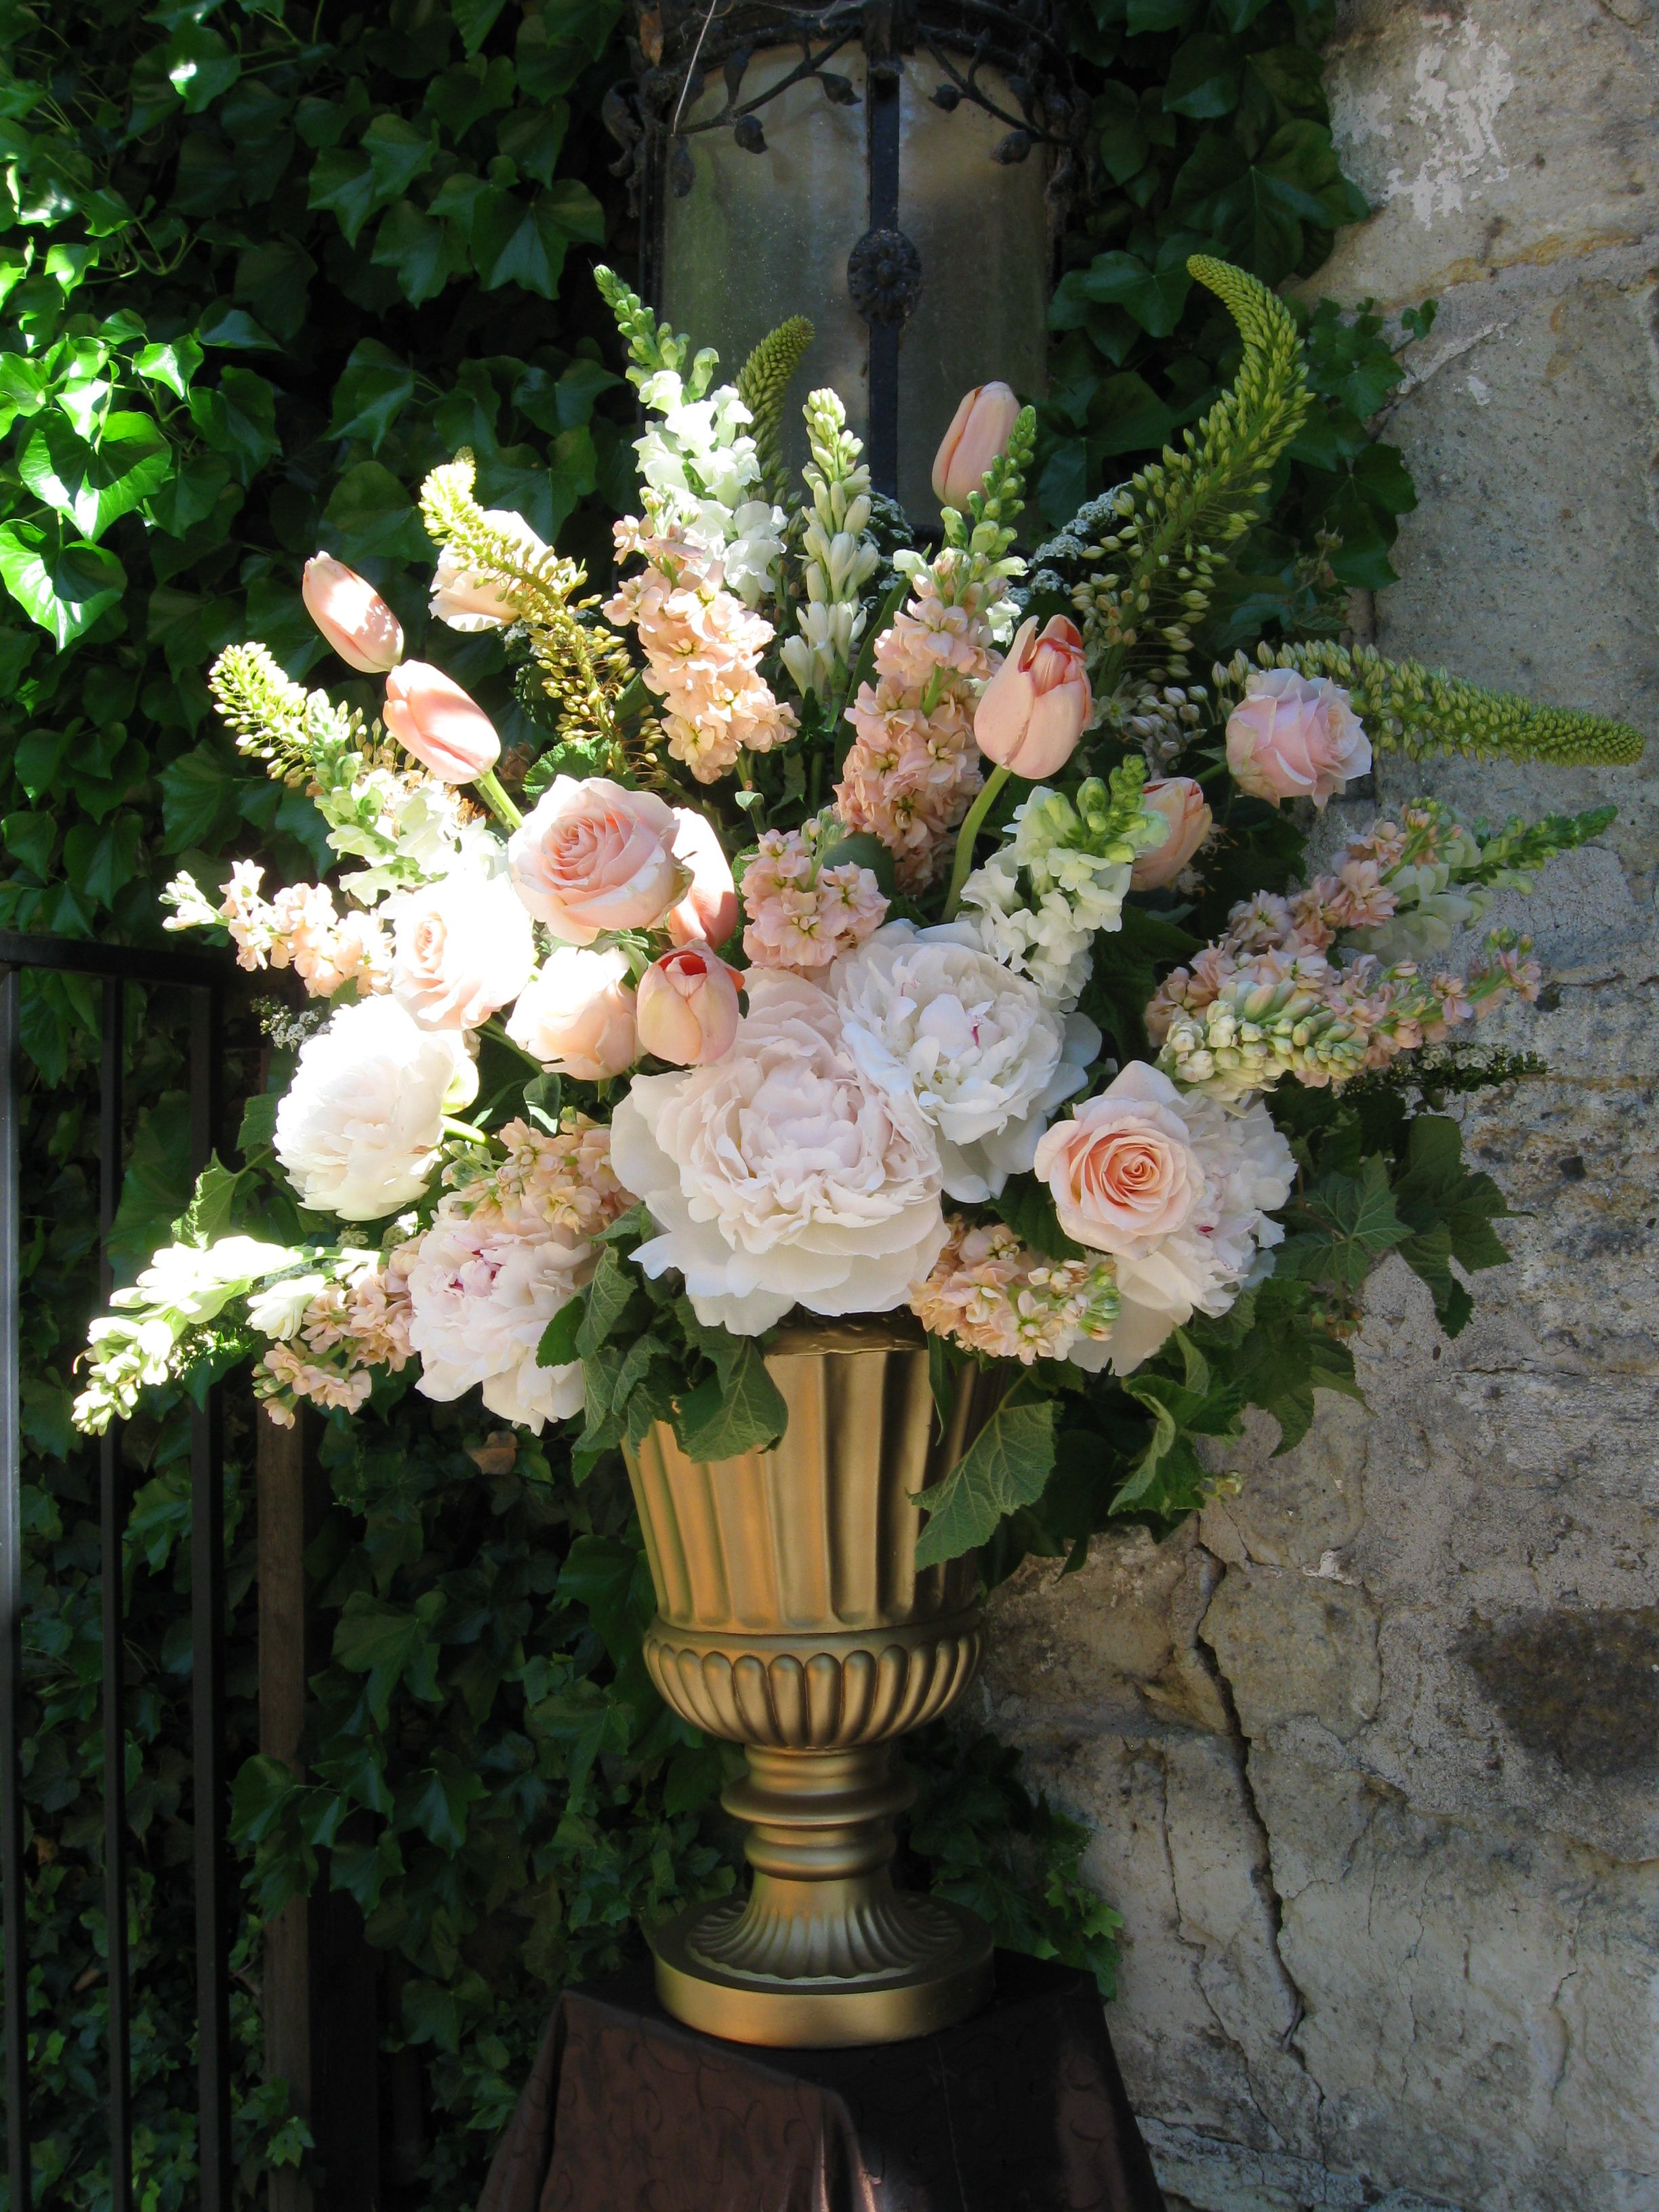 Ceremony Decor A Large Urn Arrangement In Soft Pinks, Peachy